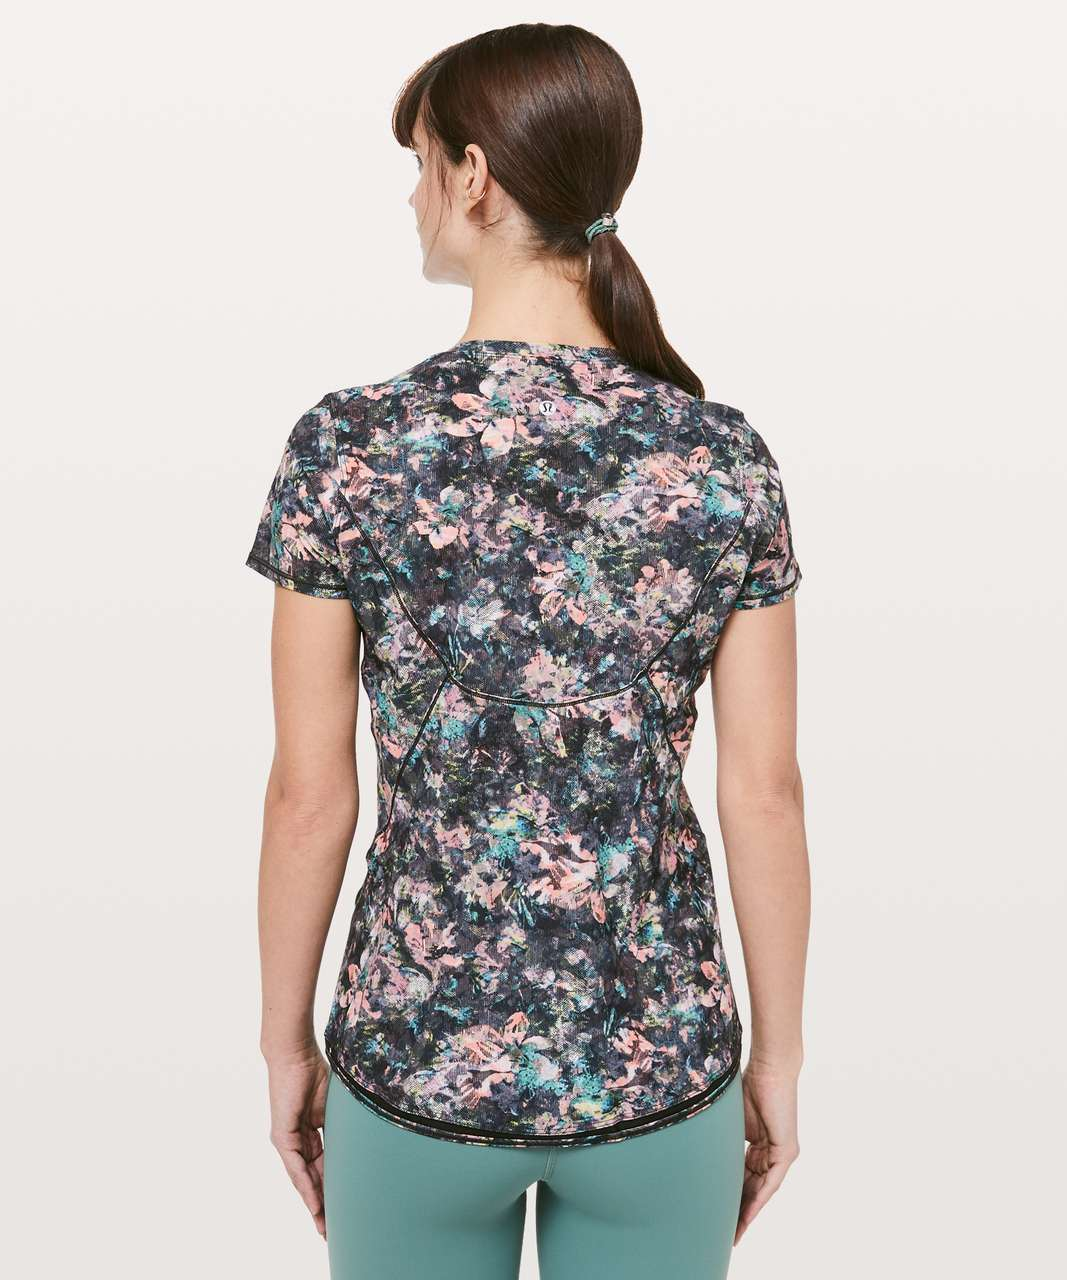 Lululemon Into the Sun Short Sleeve - Dappled Daze Multi